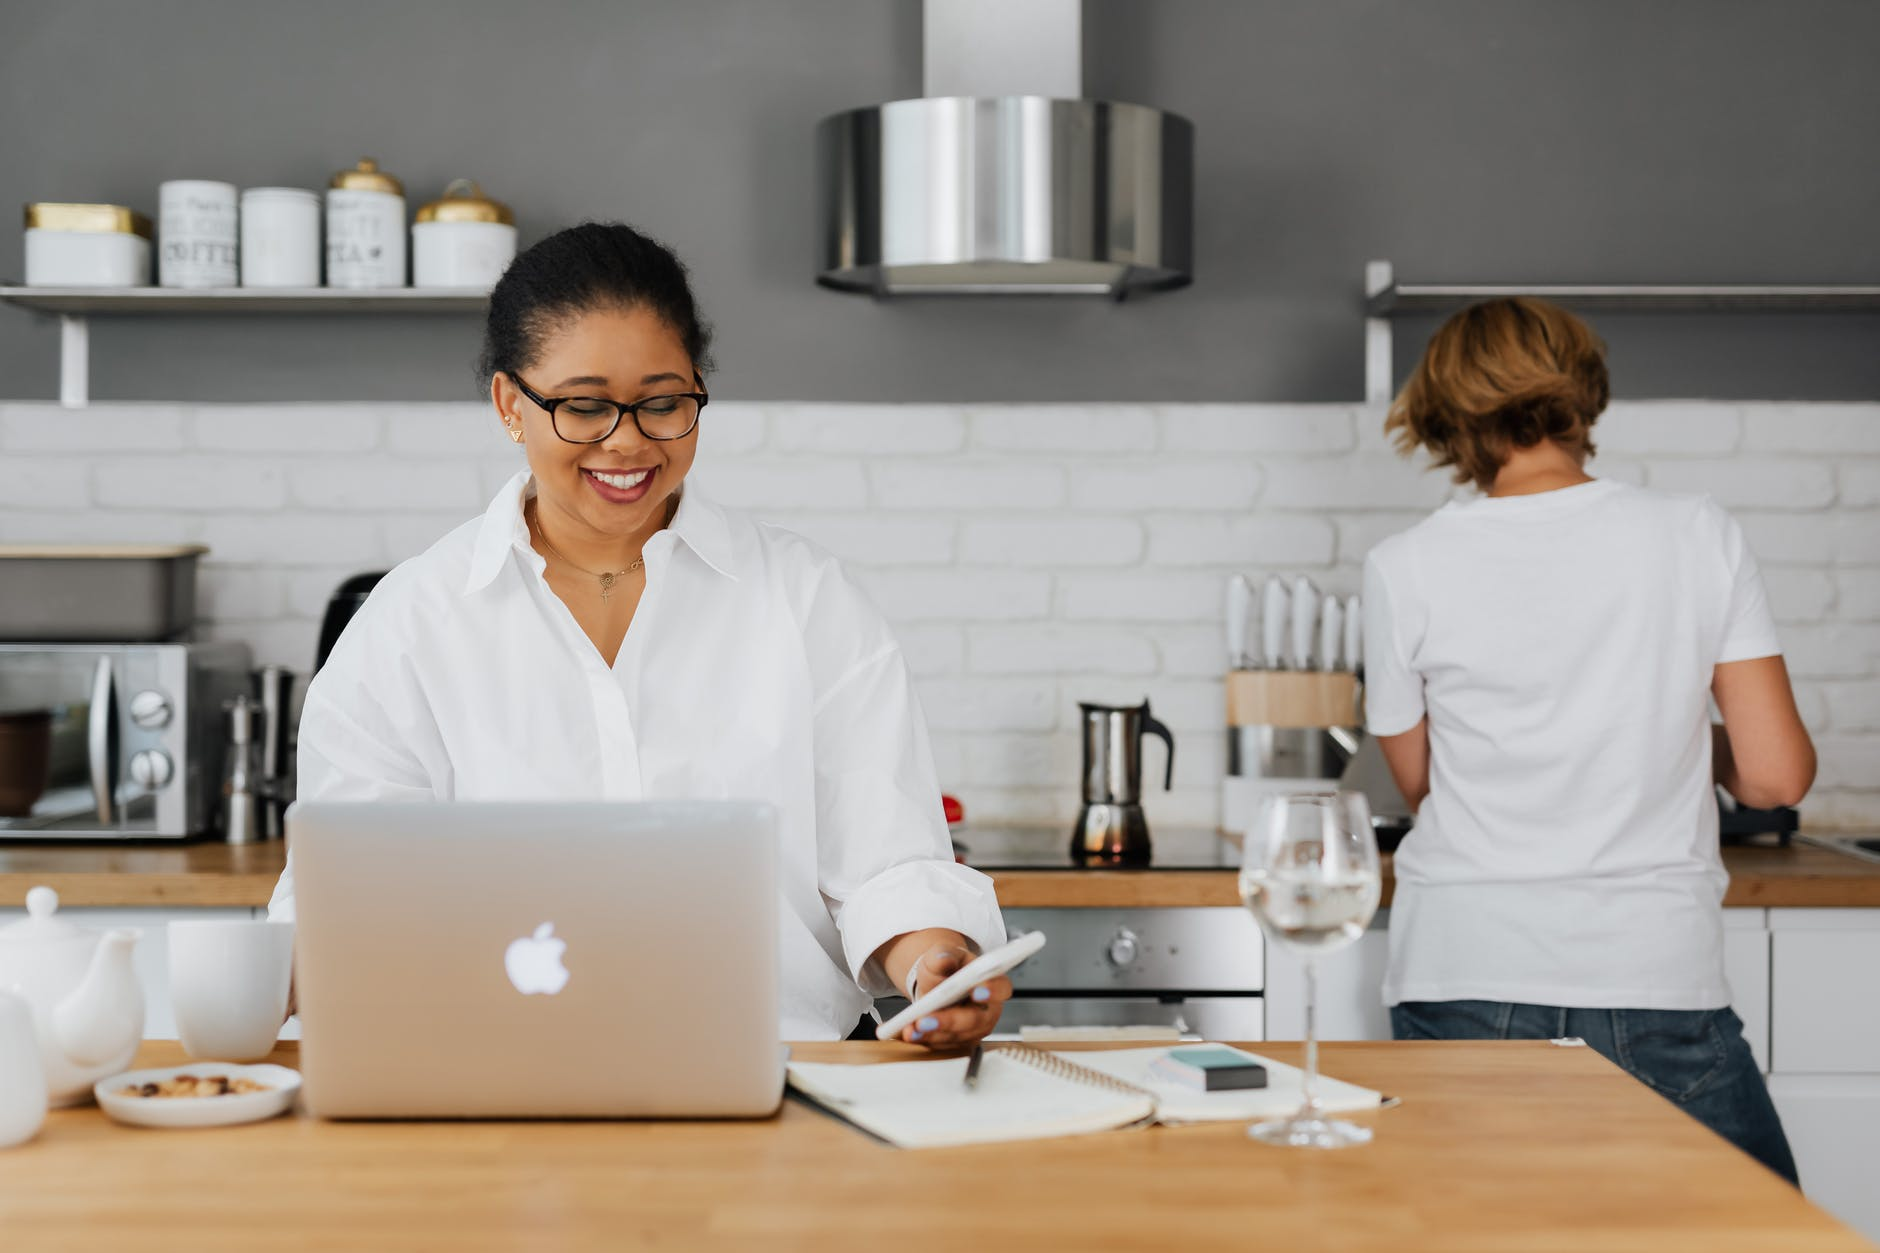 A smiling woman holding a cellphone and working on her laptop on a kitchen counter | Source: Pexels